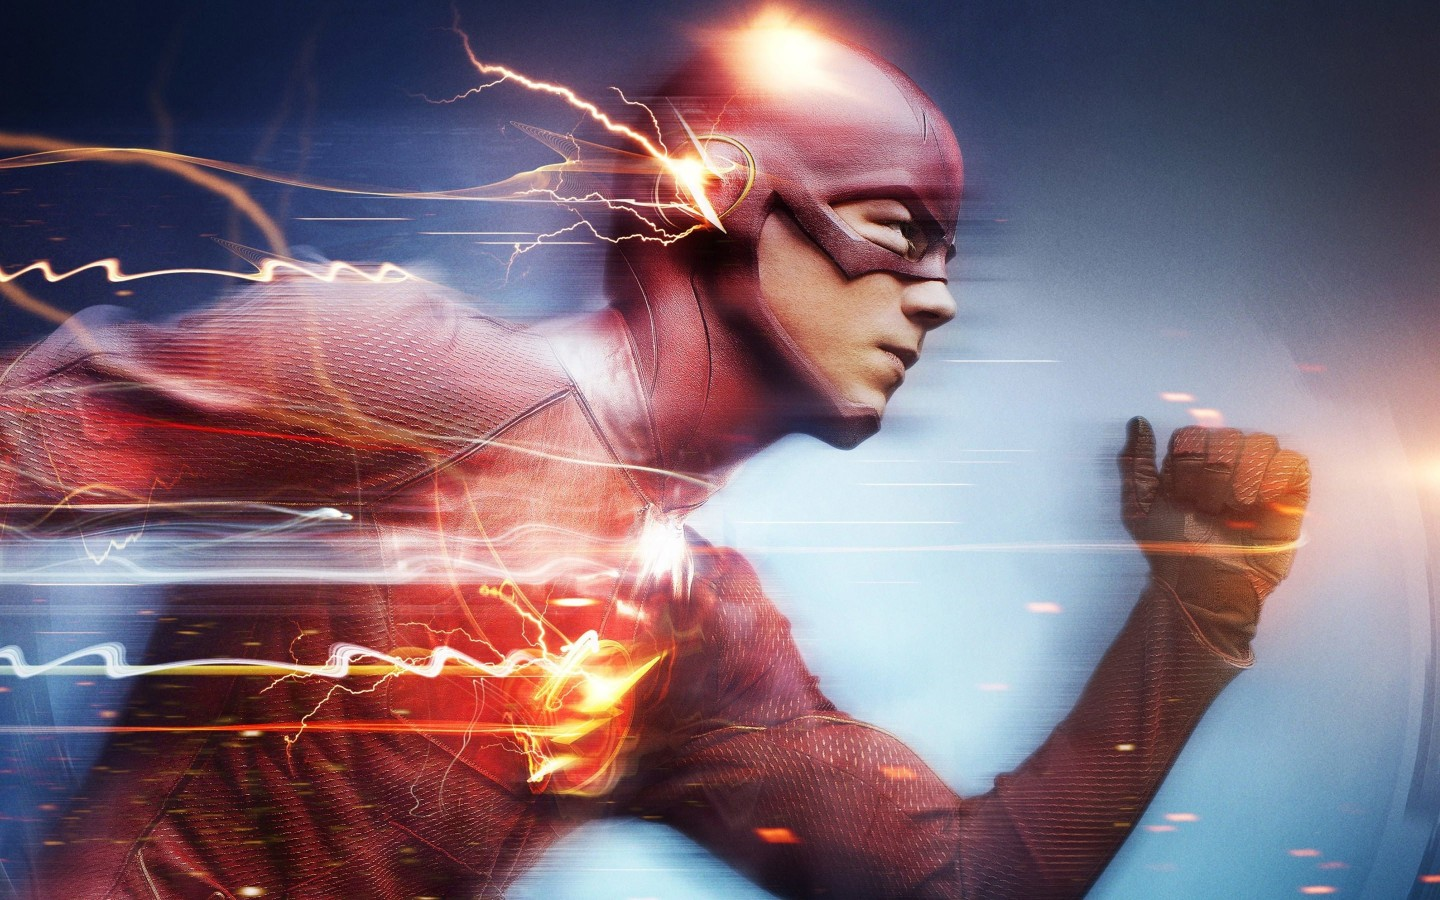 The Flash Wallpaper for Desktop 1440x900